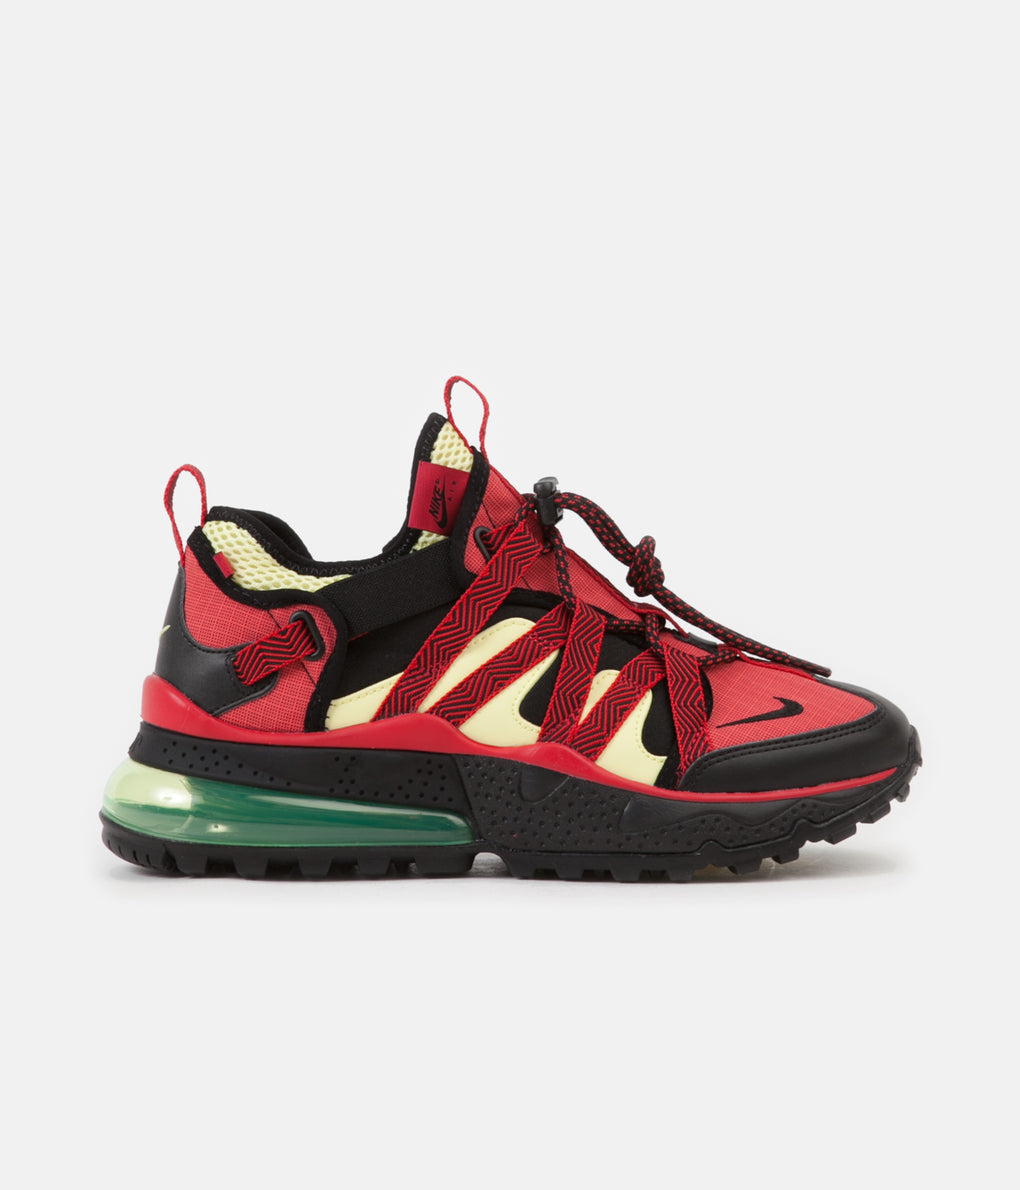 Nike Air Max 270 Bowfin Shoes - Black / Black - University Red - Light Zitron